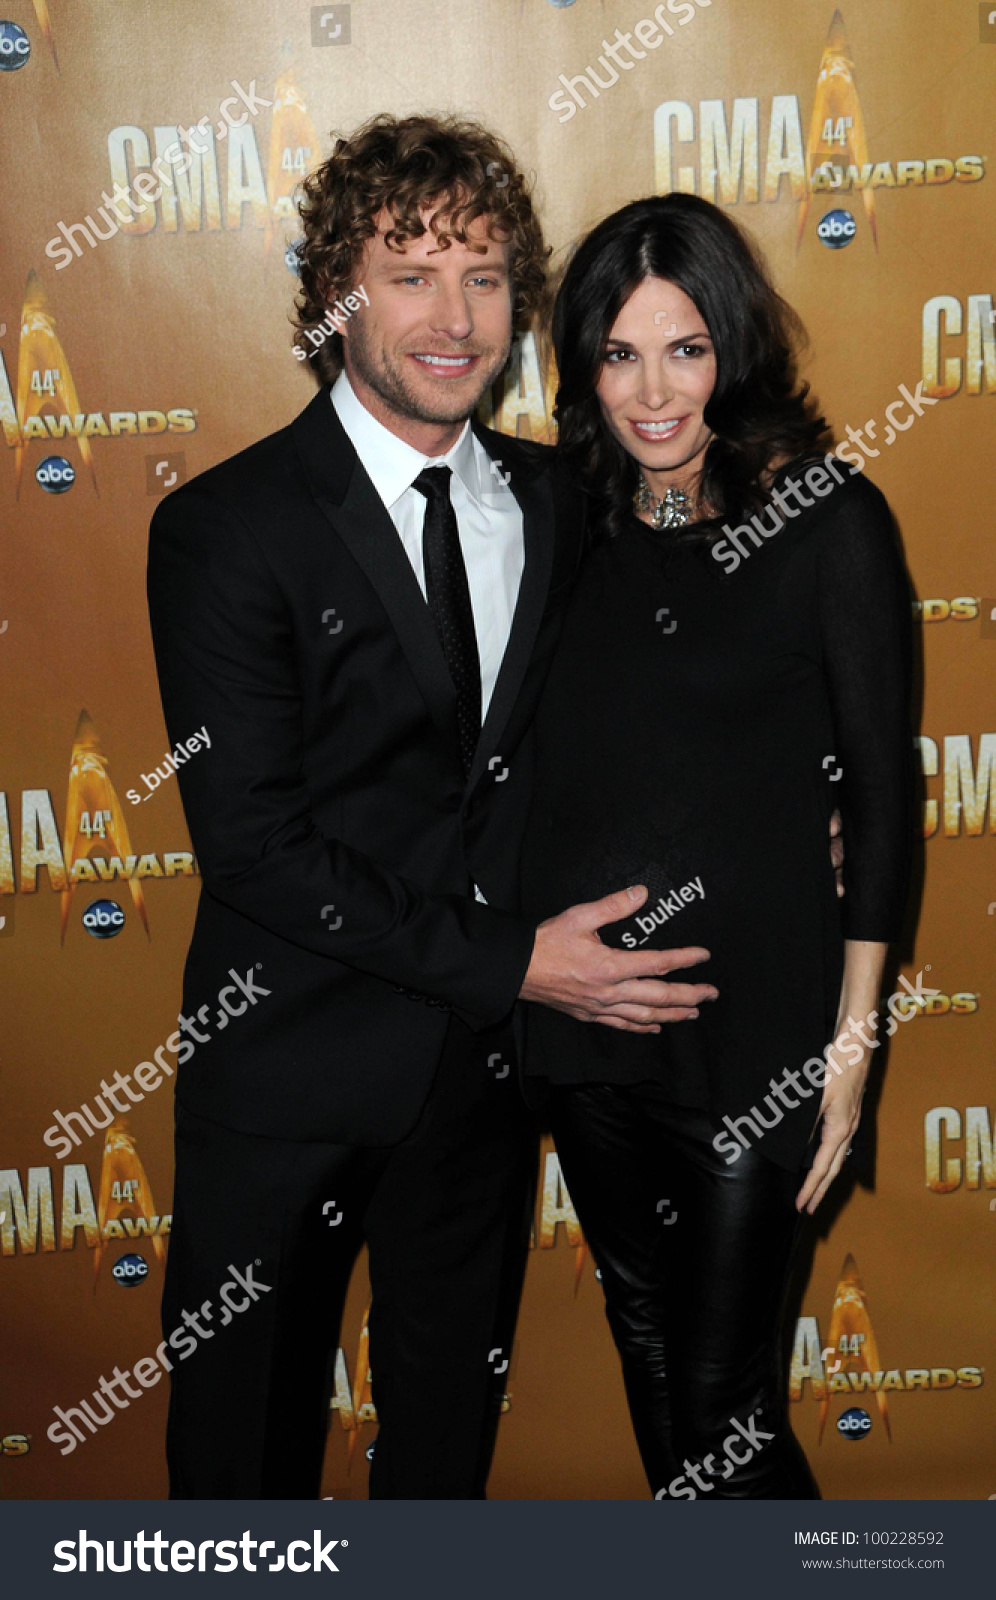 Dierks Bentley And Cassidy Black At The 44th Annual Cma